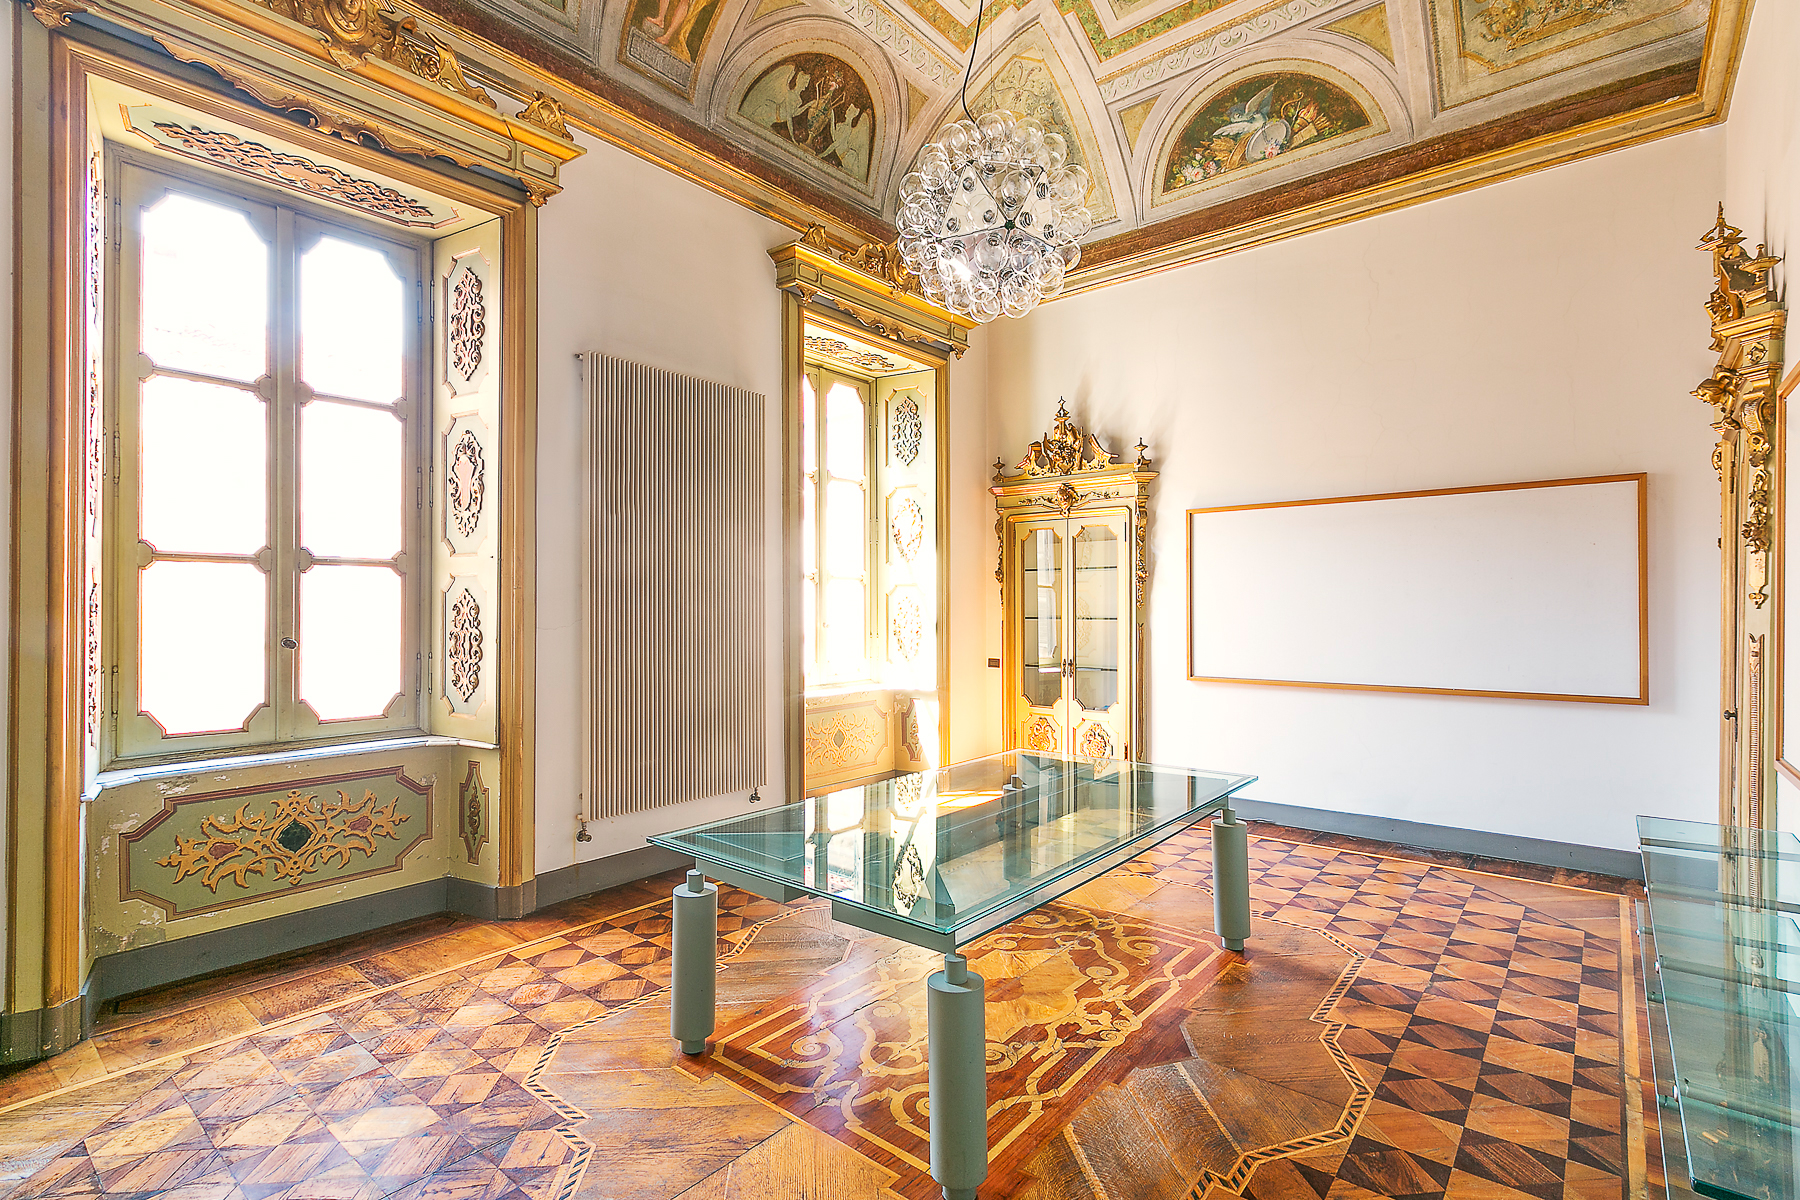 Apartment for Sale at Exquisite office in the center of Novara Via Negroni Novara, Novara 28100 Italy